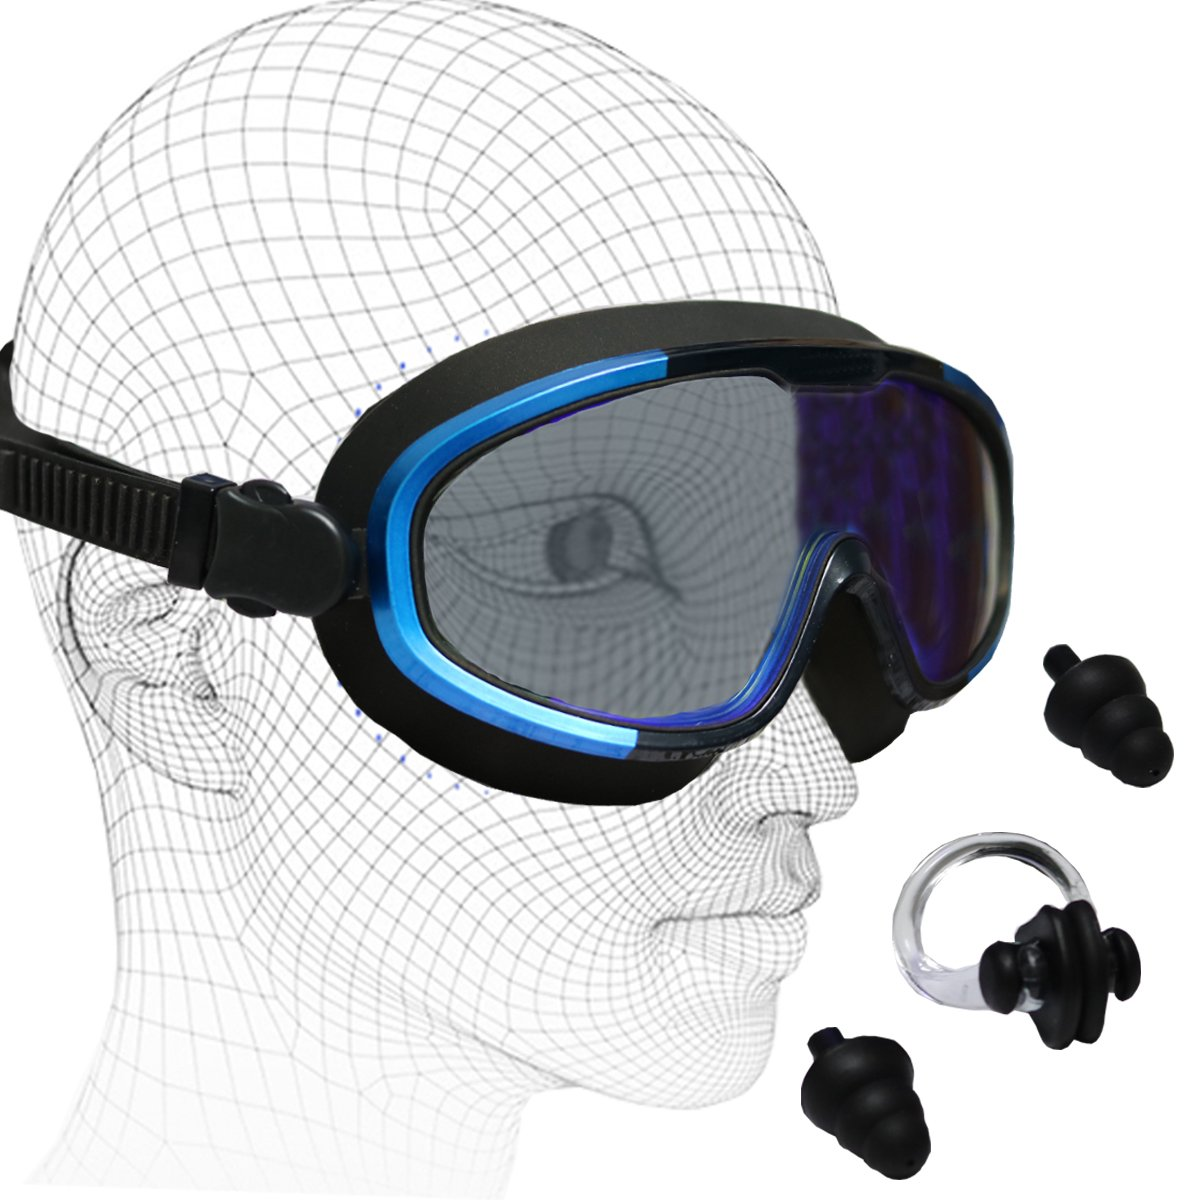 Swimming Goggles with Swim Ear Plugs & Nose Clip,UV Shield Lenses,No Leaking Anti Fog,Wide View,Soft Silicone Big Frame Adjustable Strap Colored Mirrored Goggles For Women Men Adult Youth